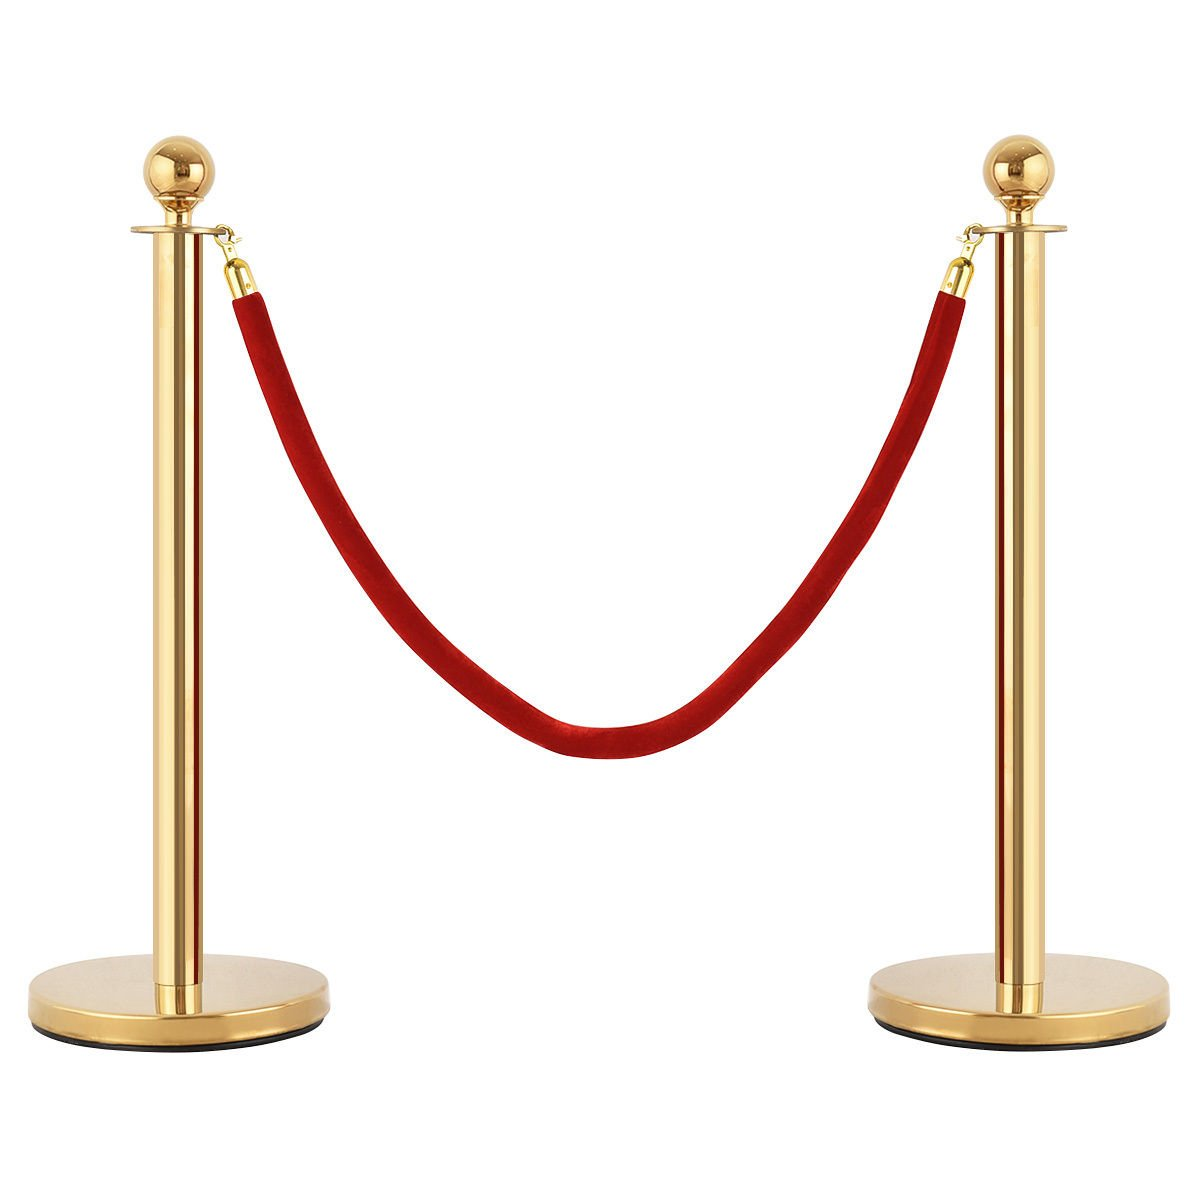 KCHEX>>>6Pcs Stanchion Posts Queue Pole Retractable 4 Velvet Ropes Crowd Control Barrier>This is our top stainless steel stanchion posts is anti-rust and flawless and the poles nice and shiny.it